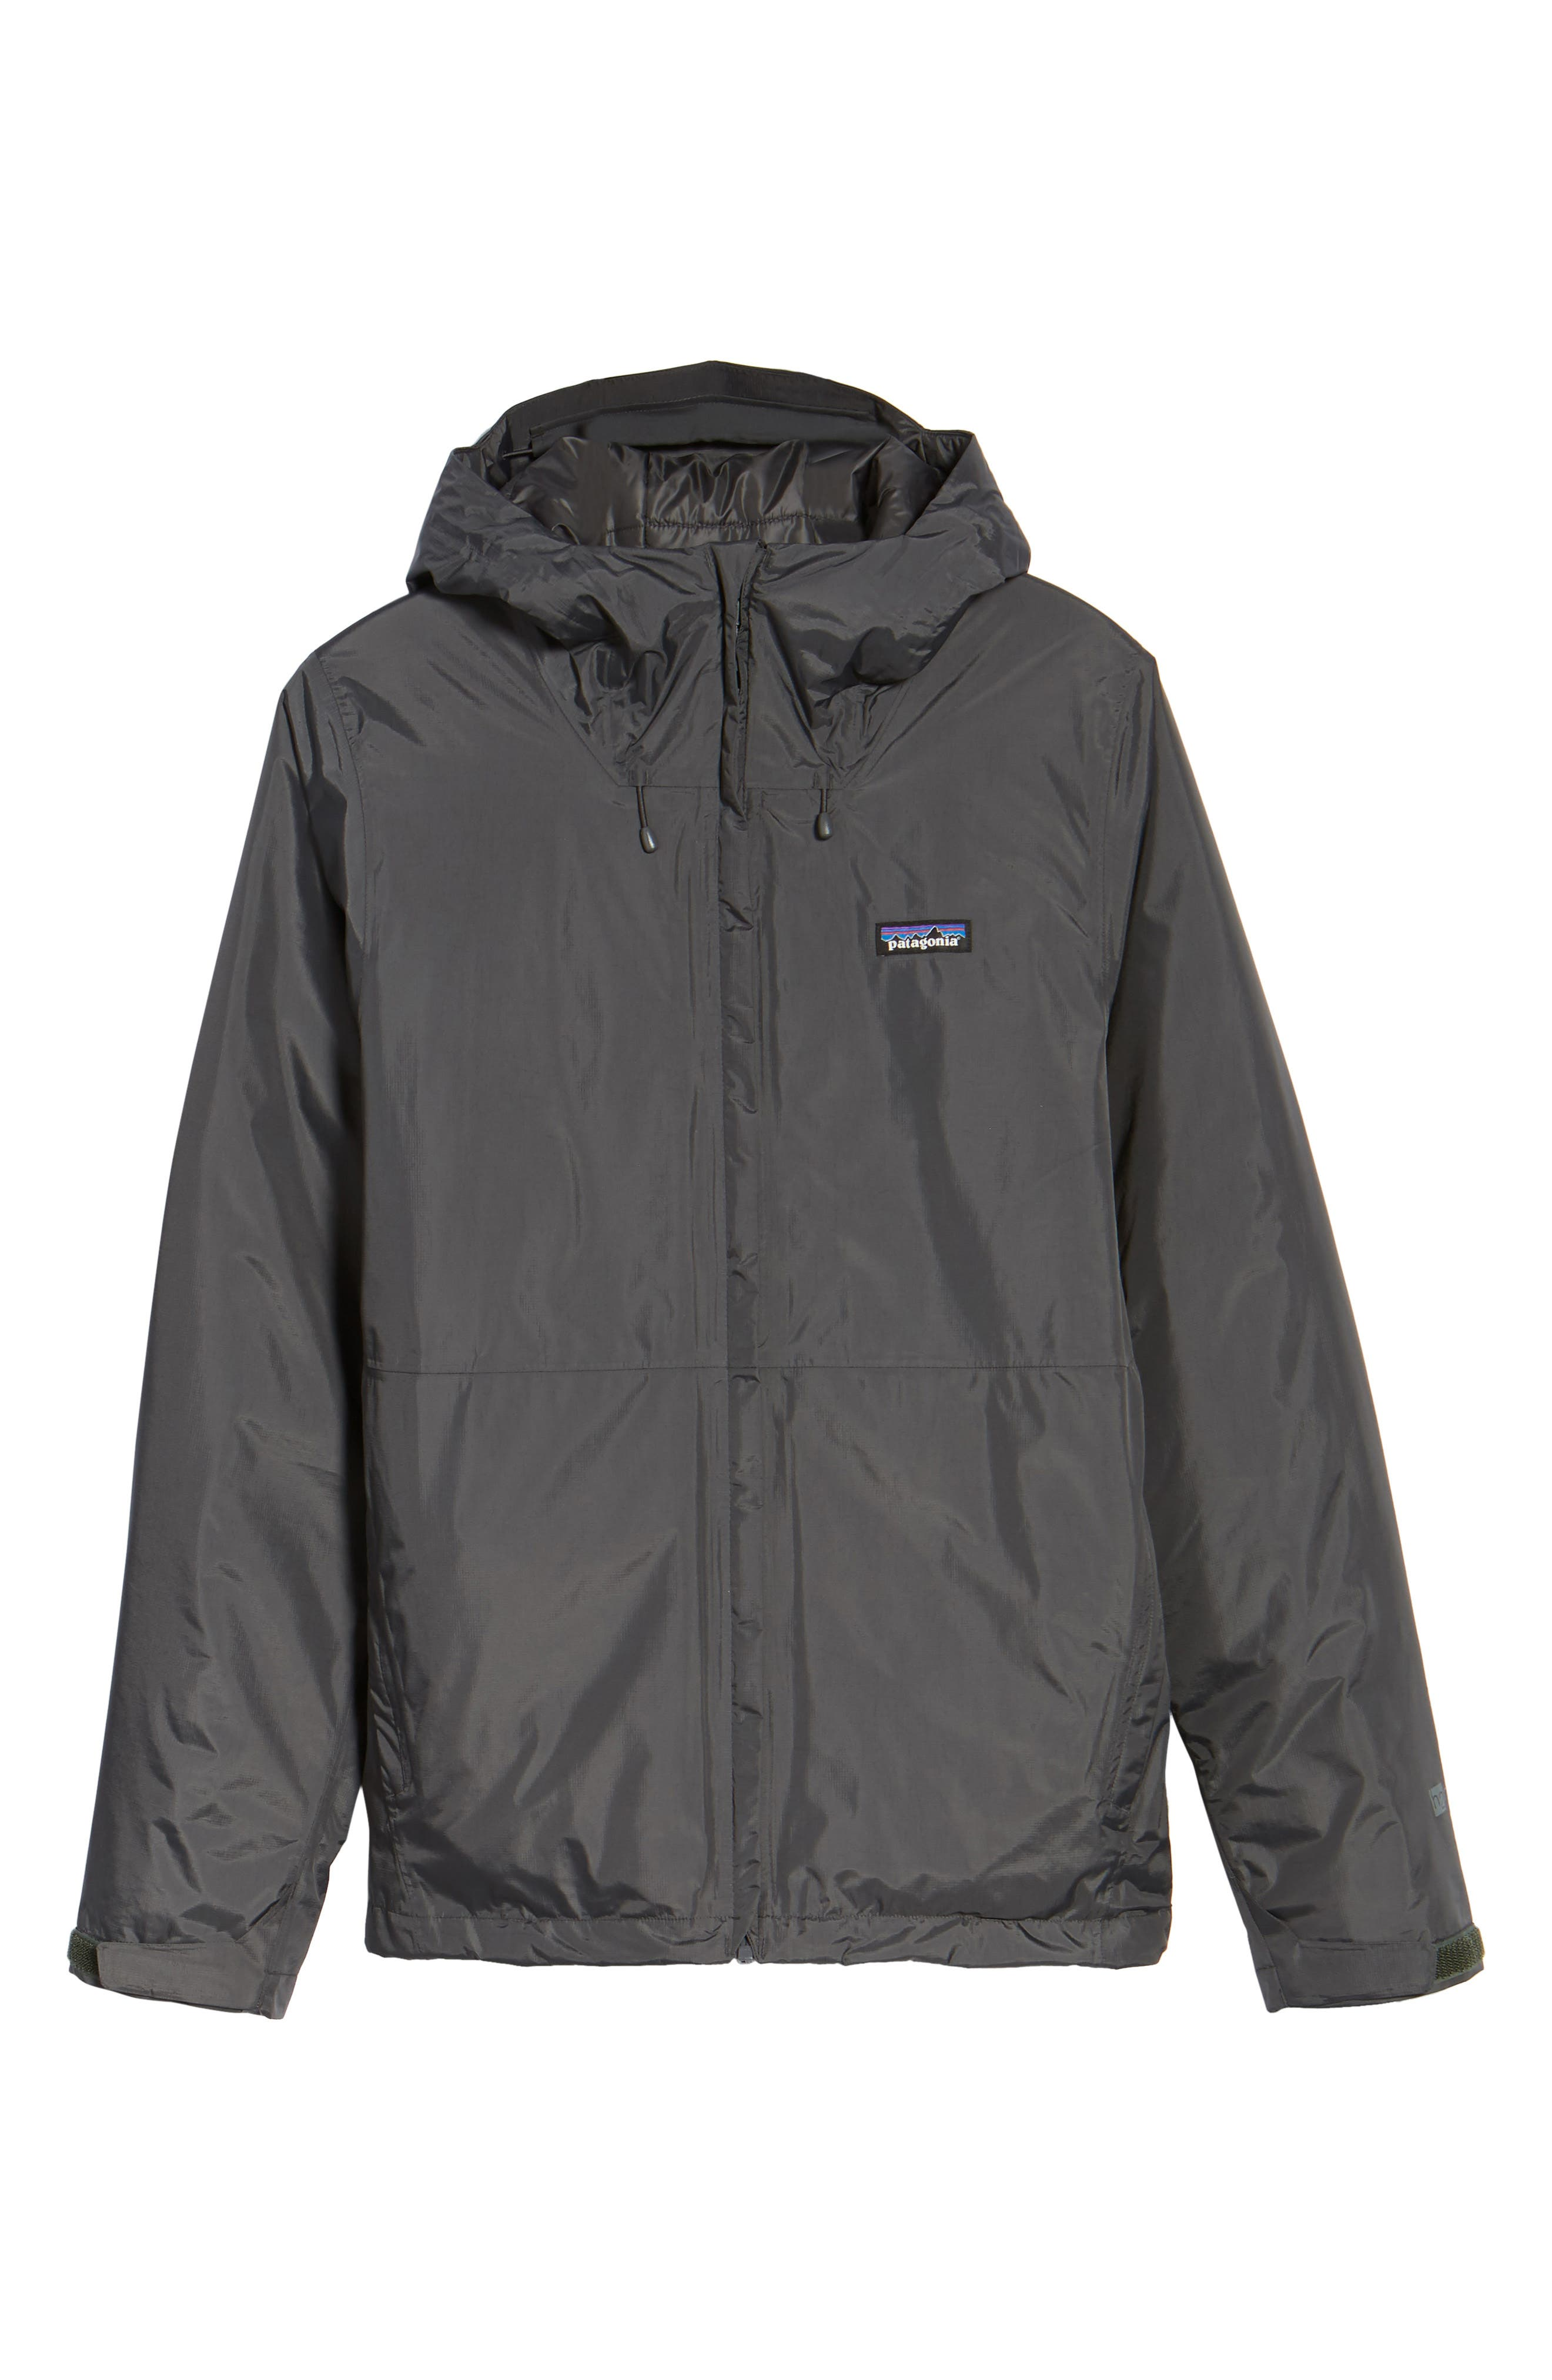 Torrentshell H2No<sup>®</sup> Packable Insulated Rain Jacket,                             Alternate thumbnail 6, color,                             Forge Grey